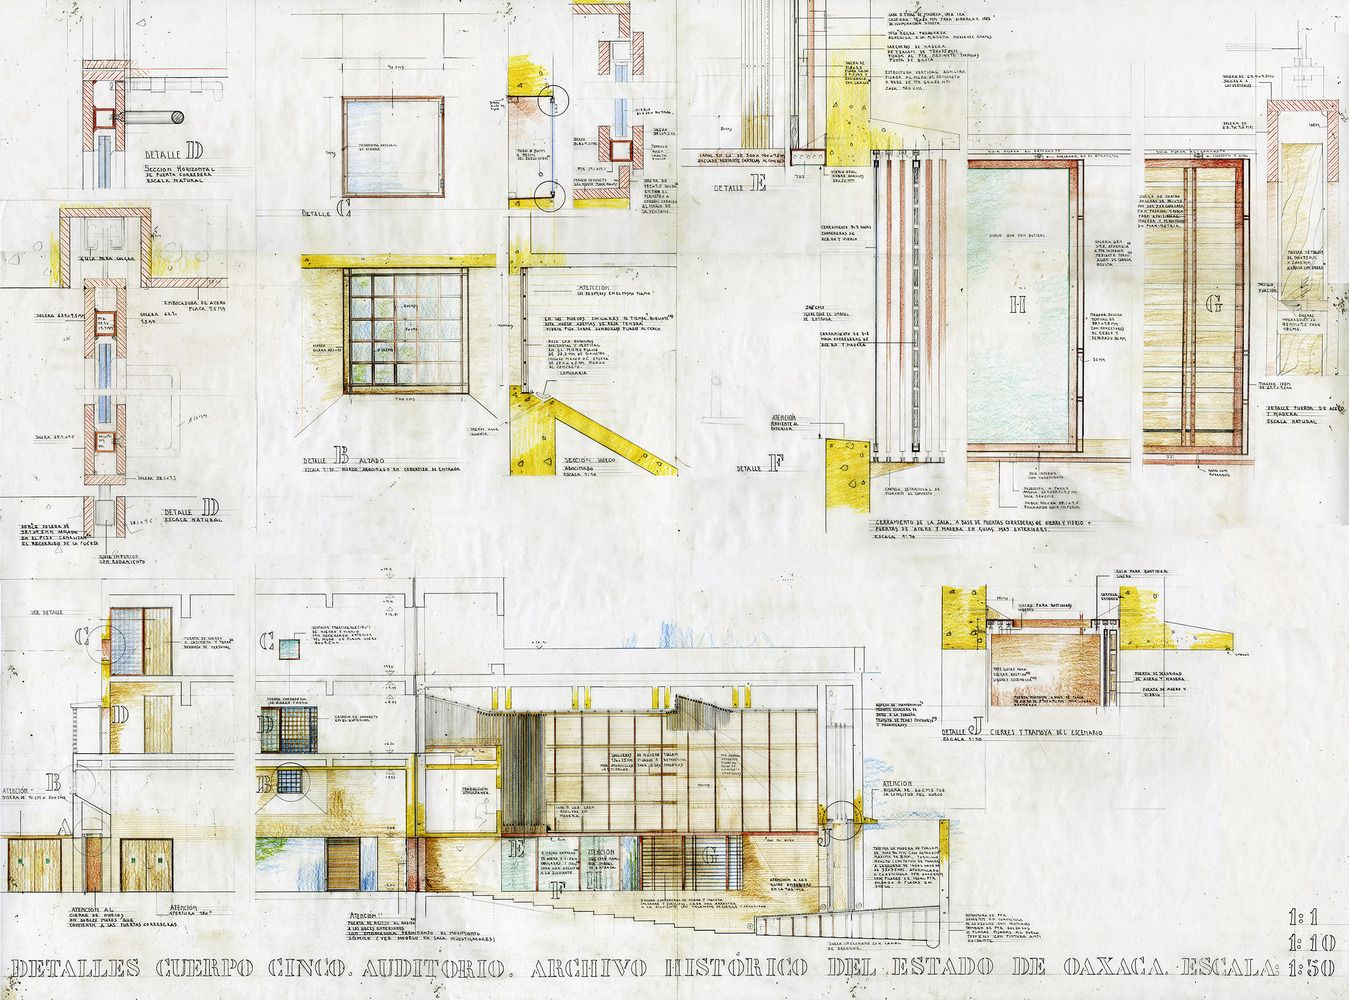 architectural drawings of buildings. Gallery Of Oaxaca\u0027s Historical Archive Building / Mendaro Arquitectos - 33 Architectural Drawings Buildings